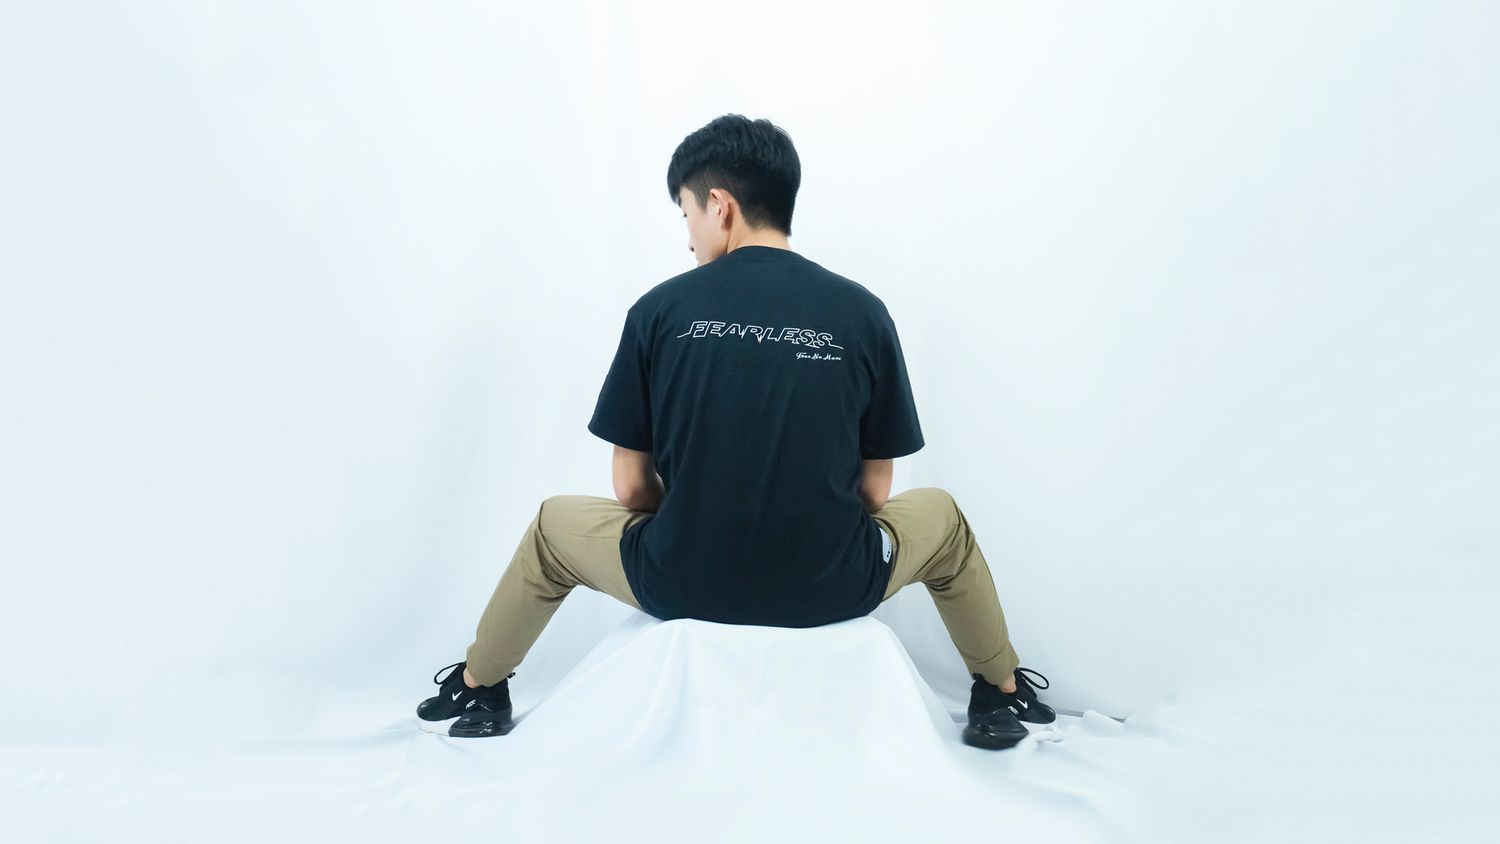 """ROYARIC Kingdom Official Store - """"Start Imagining""""   FREE FROM FEAR"""